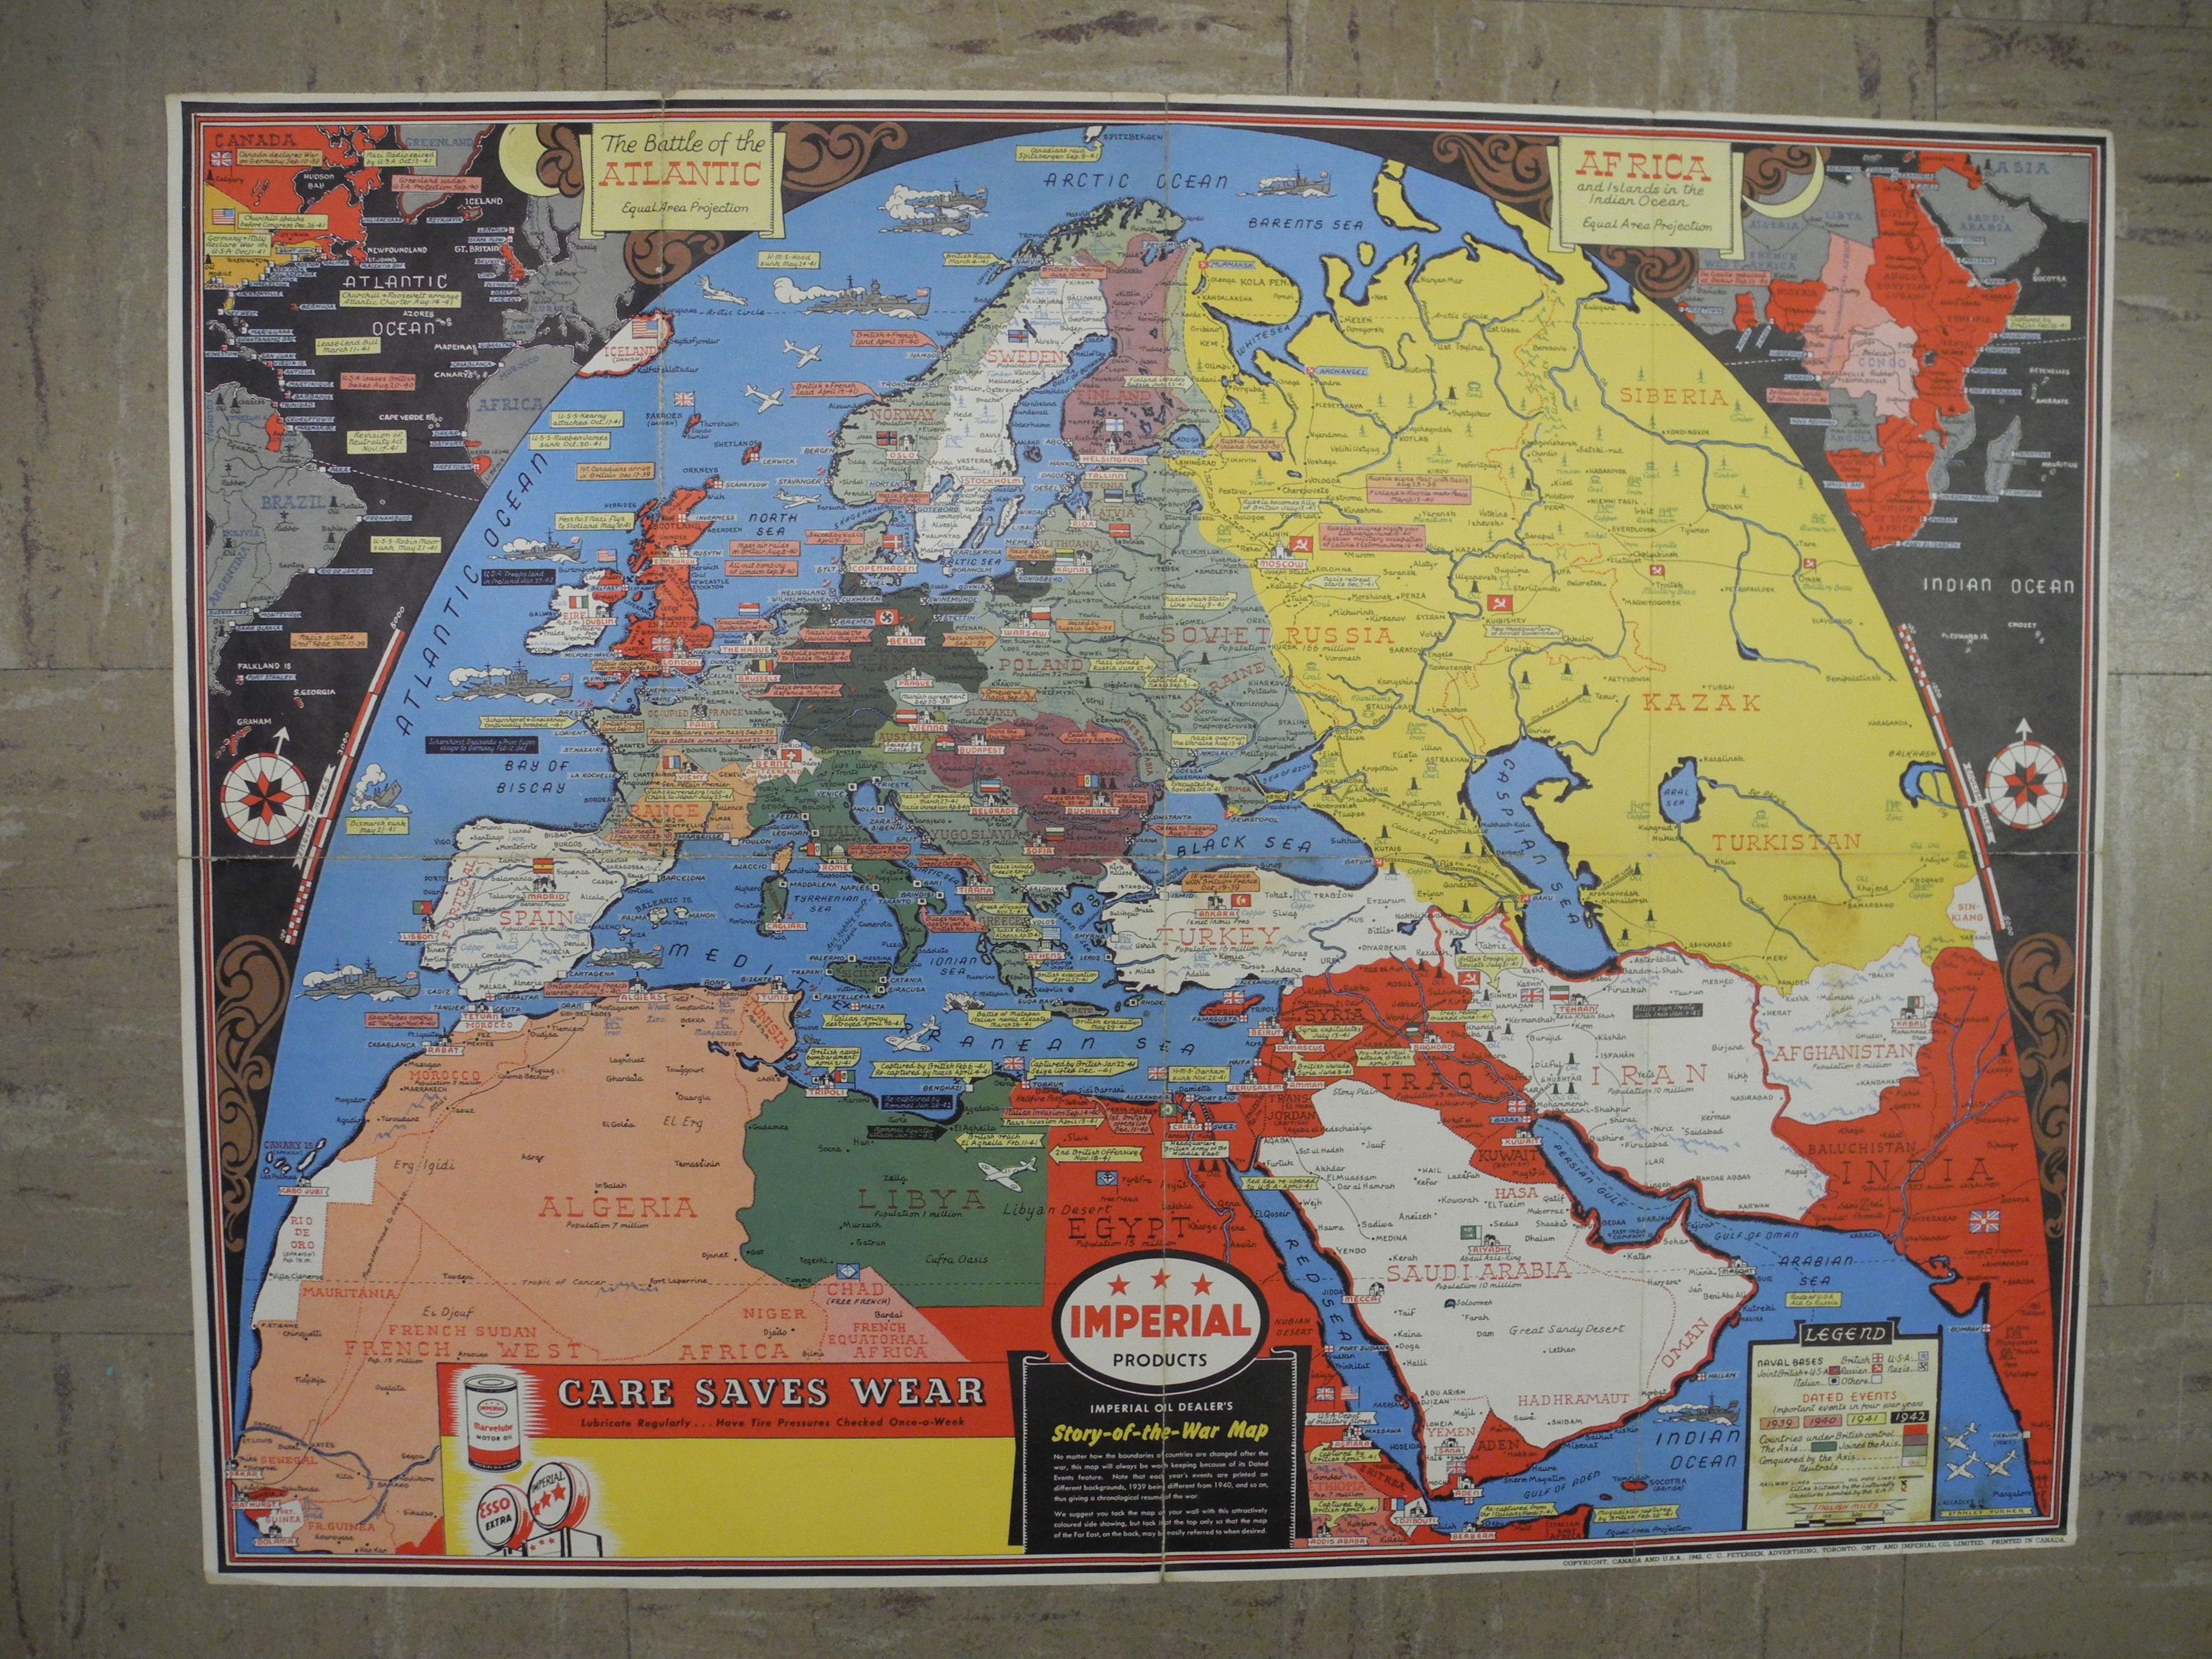 Imperial products imperial oil dealers story of the war map imperial oil dealers story of the war map imperial gumiabroncs Choice Image